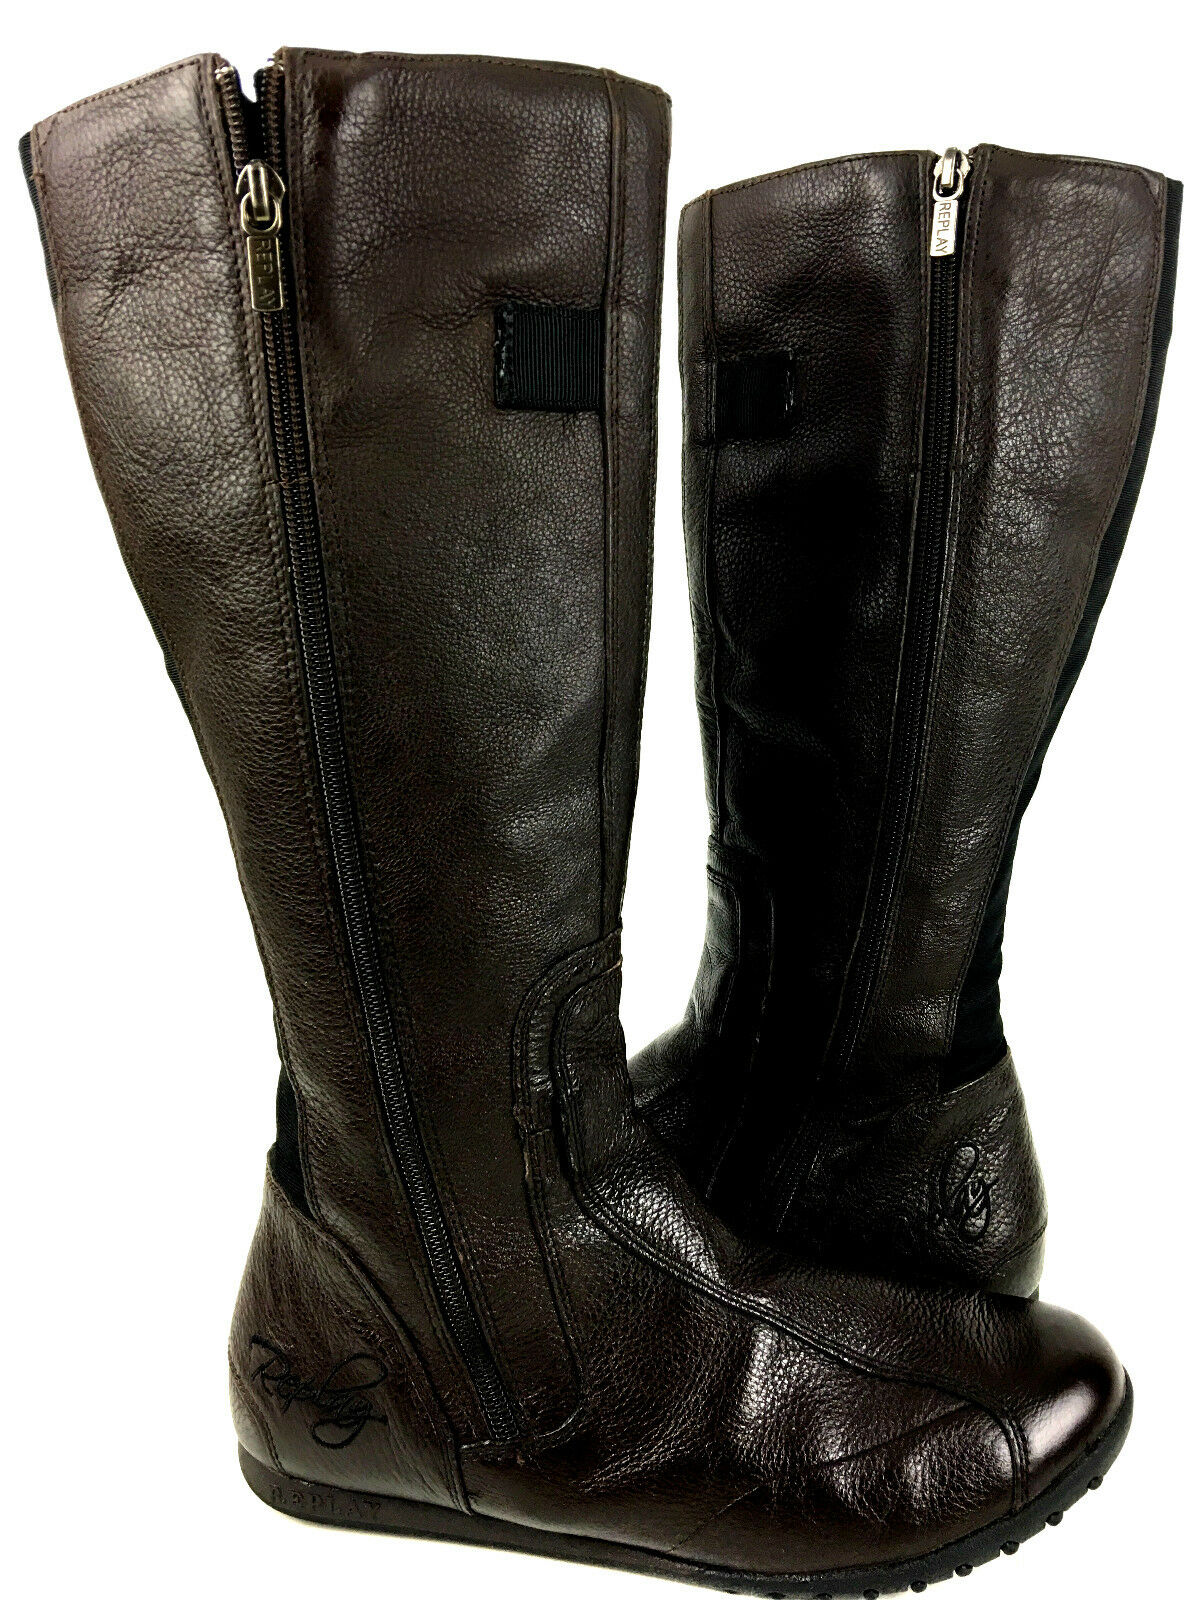 Replay Double Side Zipper Brown Knee high Leather Boots Boots Boots Size 9.5 USA. EUR.40 5db7f6